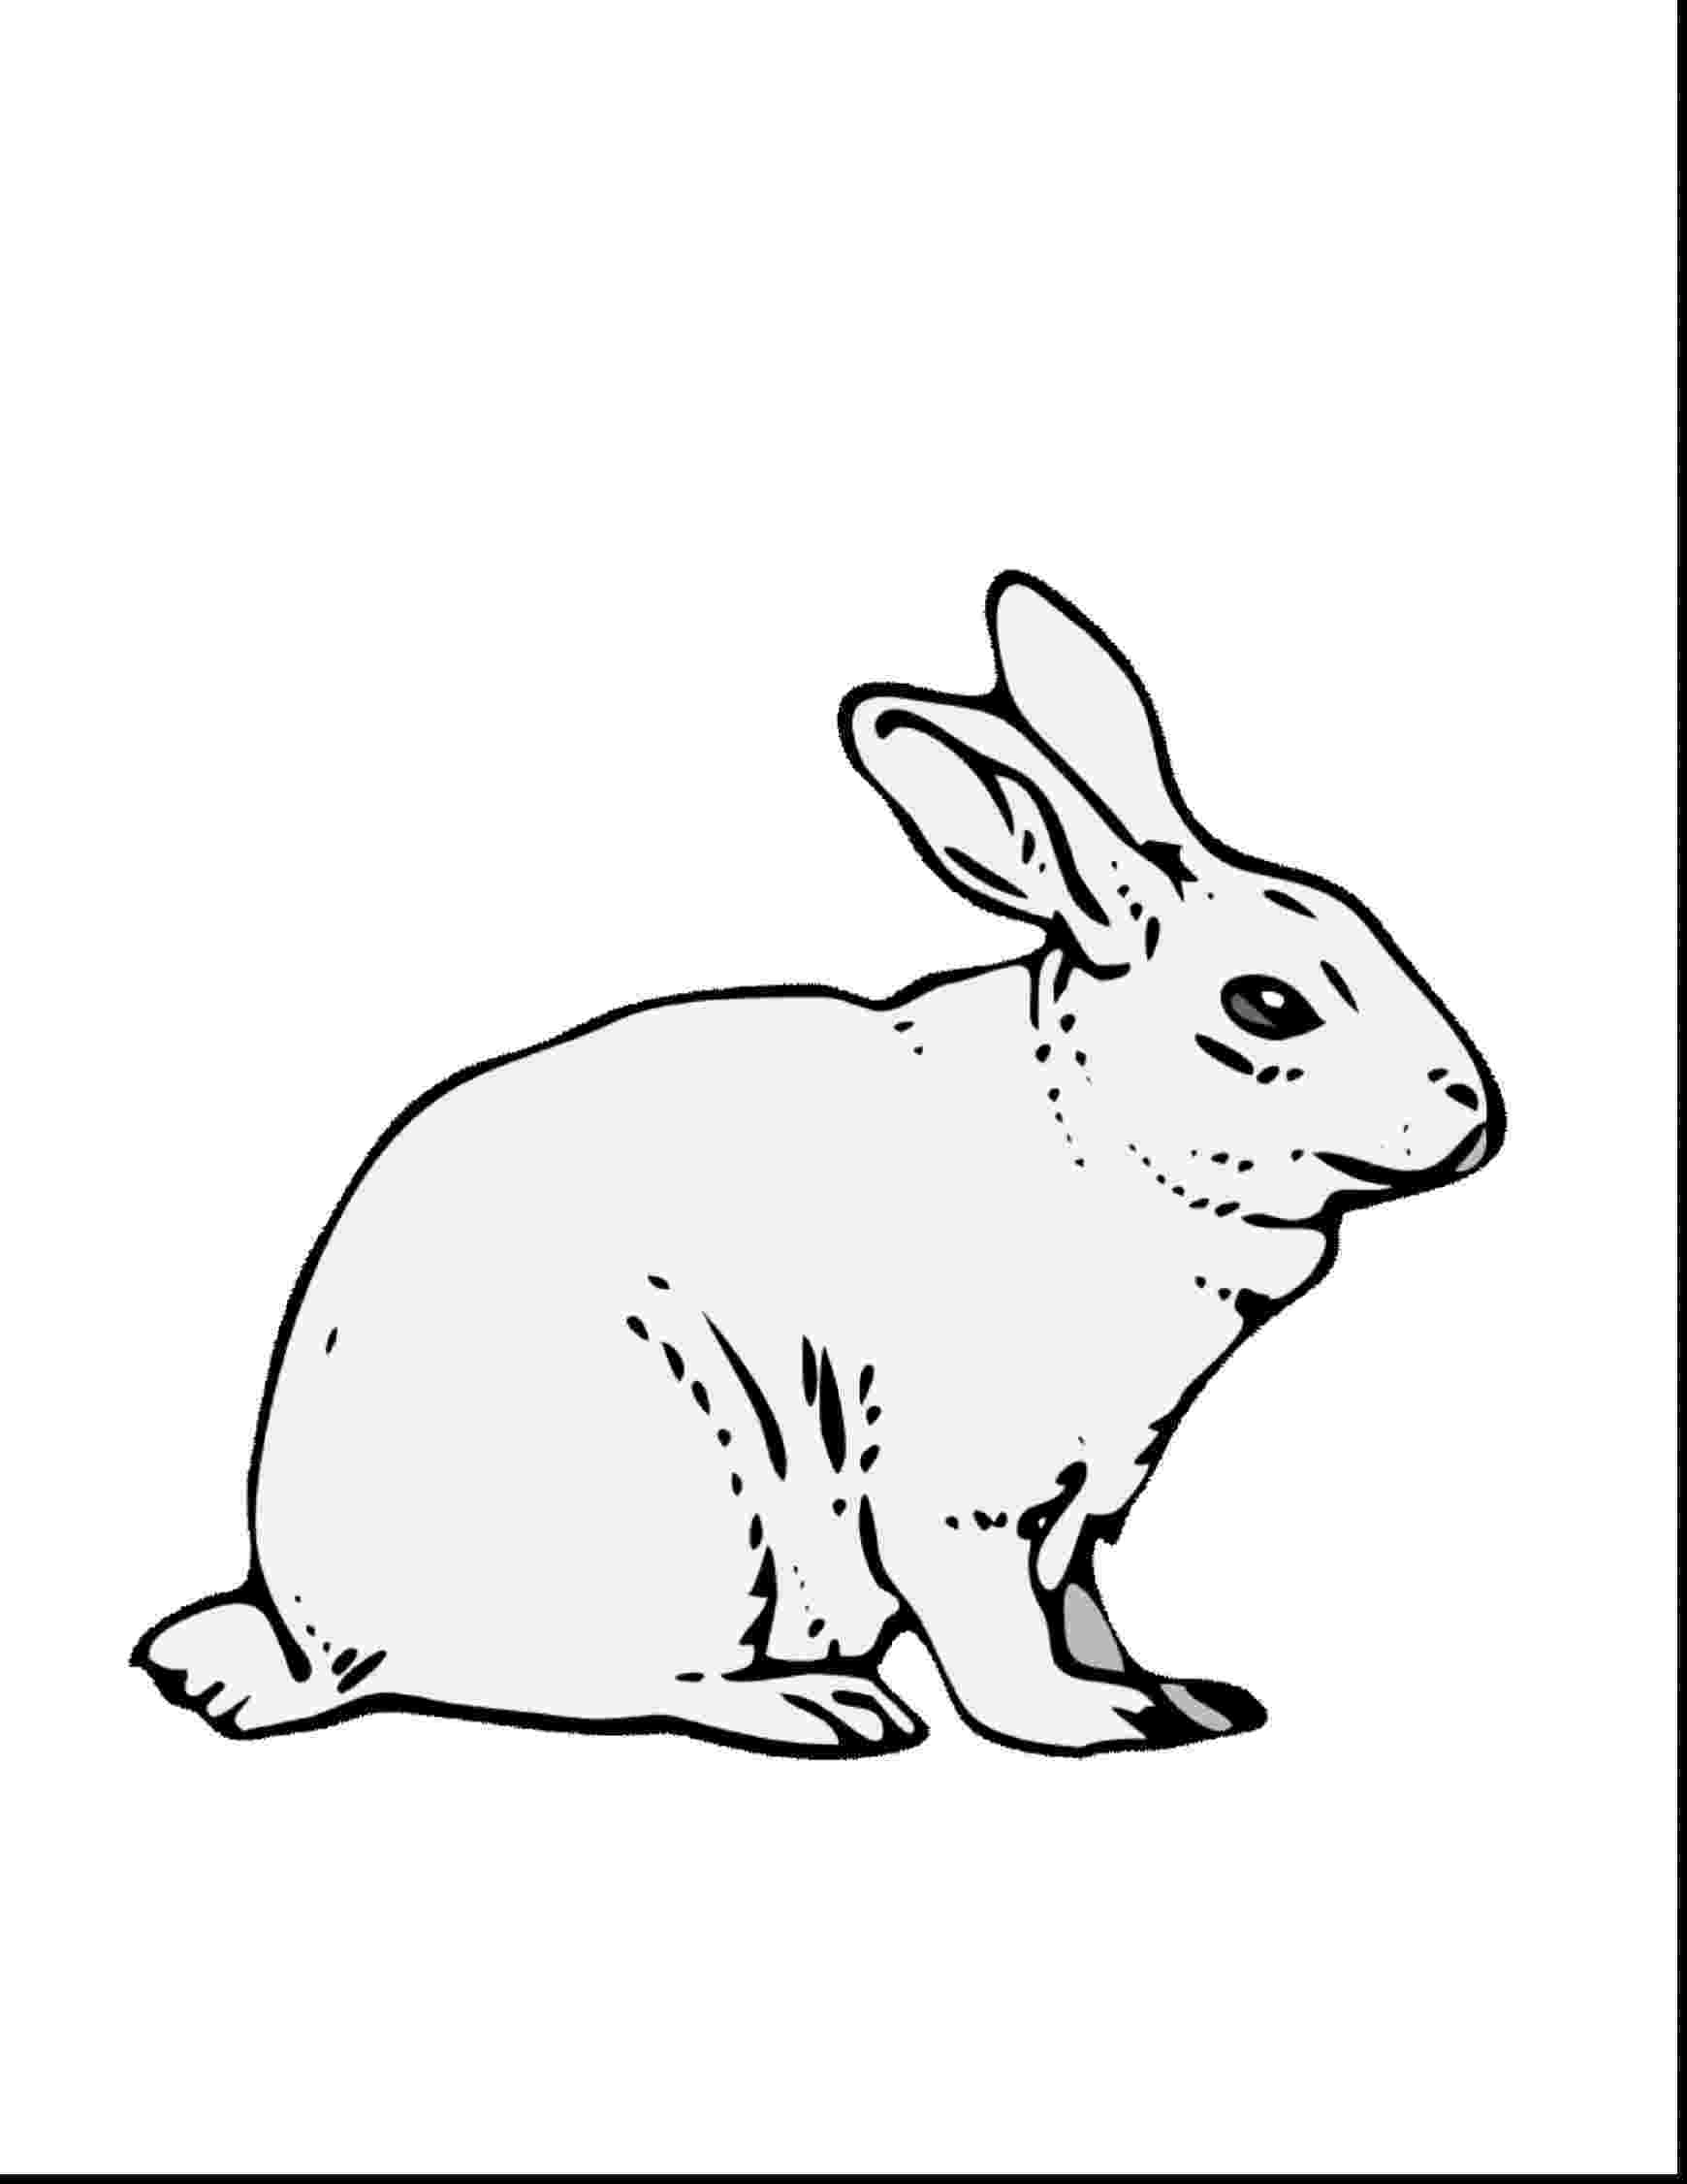 colouring page rabbit the best free rabbit drawing images download from 2722 colouring rabbit page